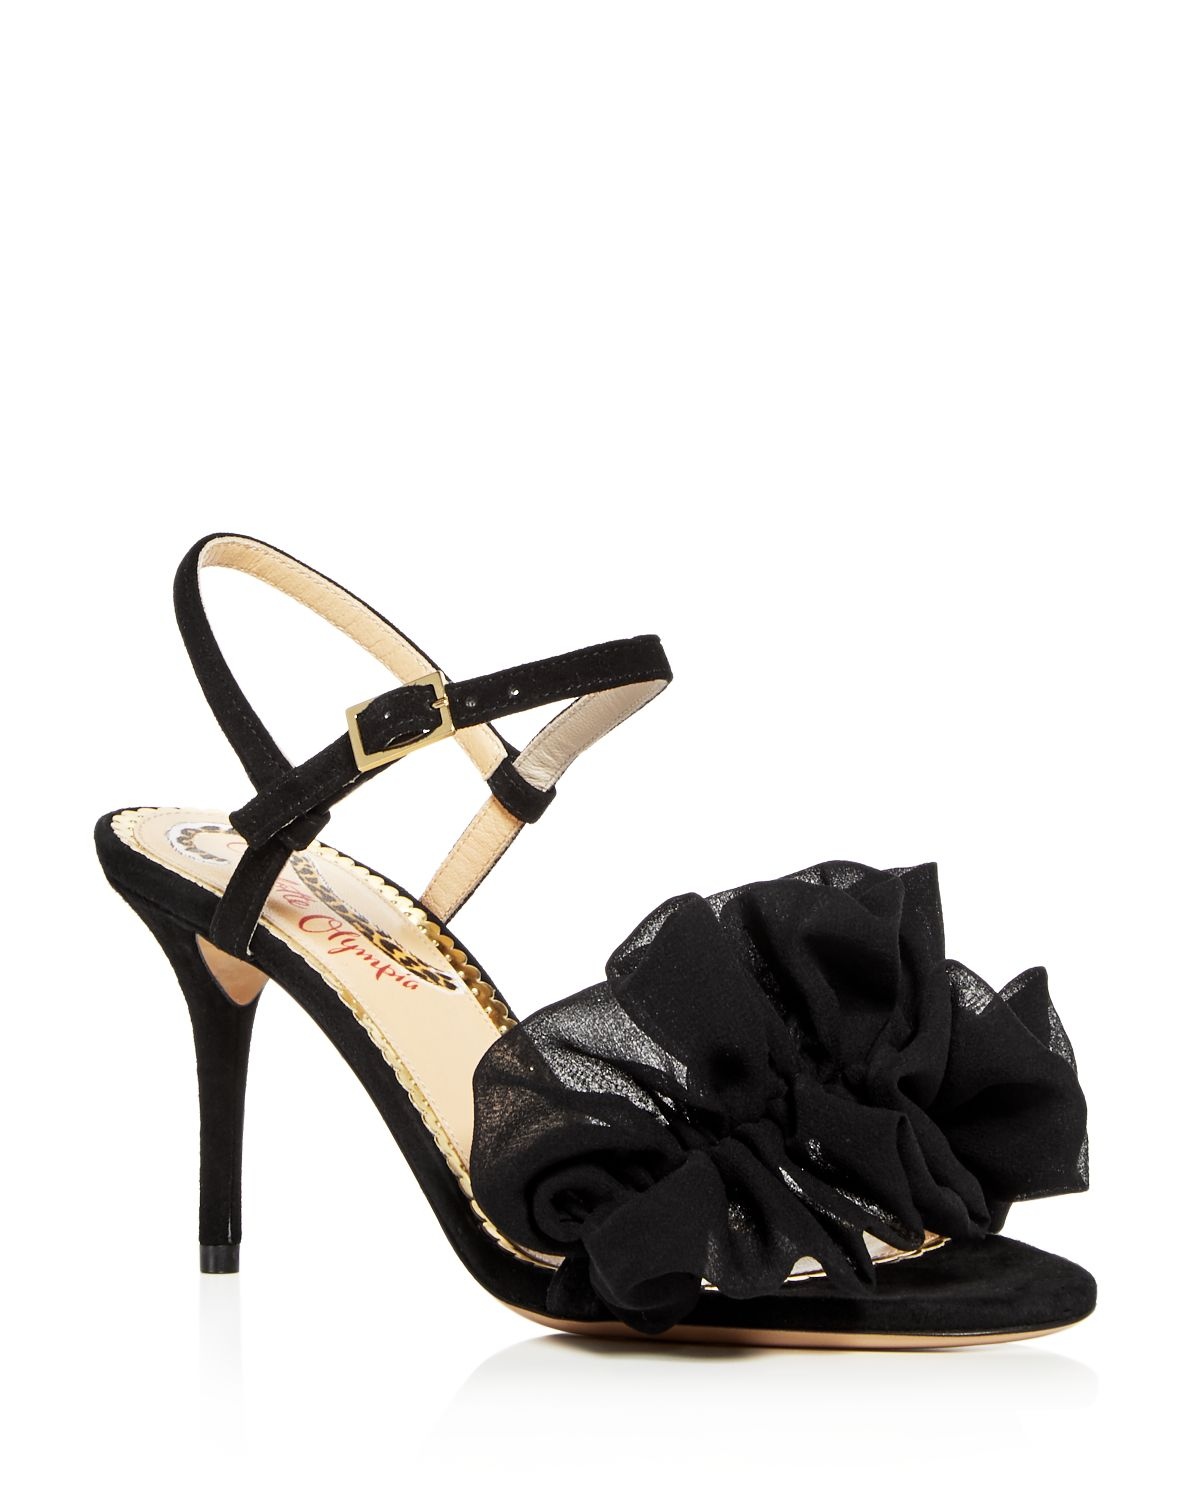 Charlotte Olympia Women's Reia Leather & Chiffon Slingback High-Heel Sandals